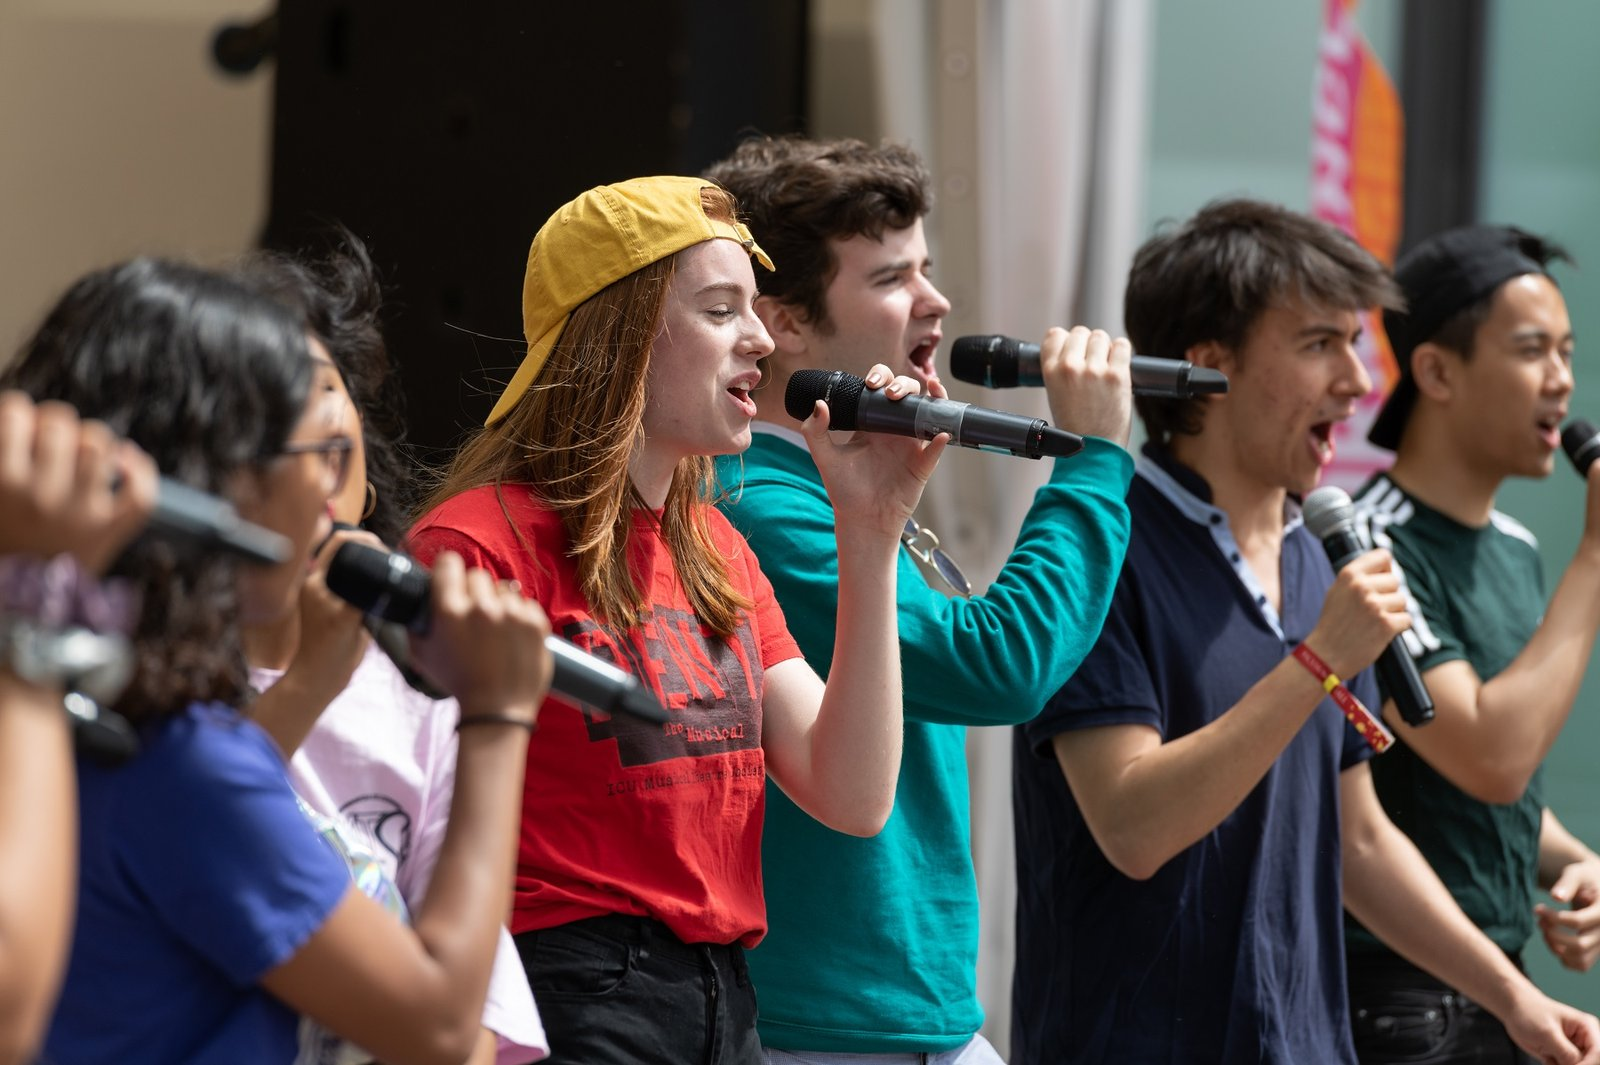 Singers performing at the Festival